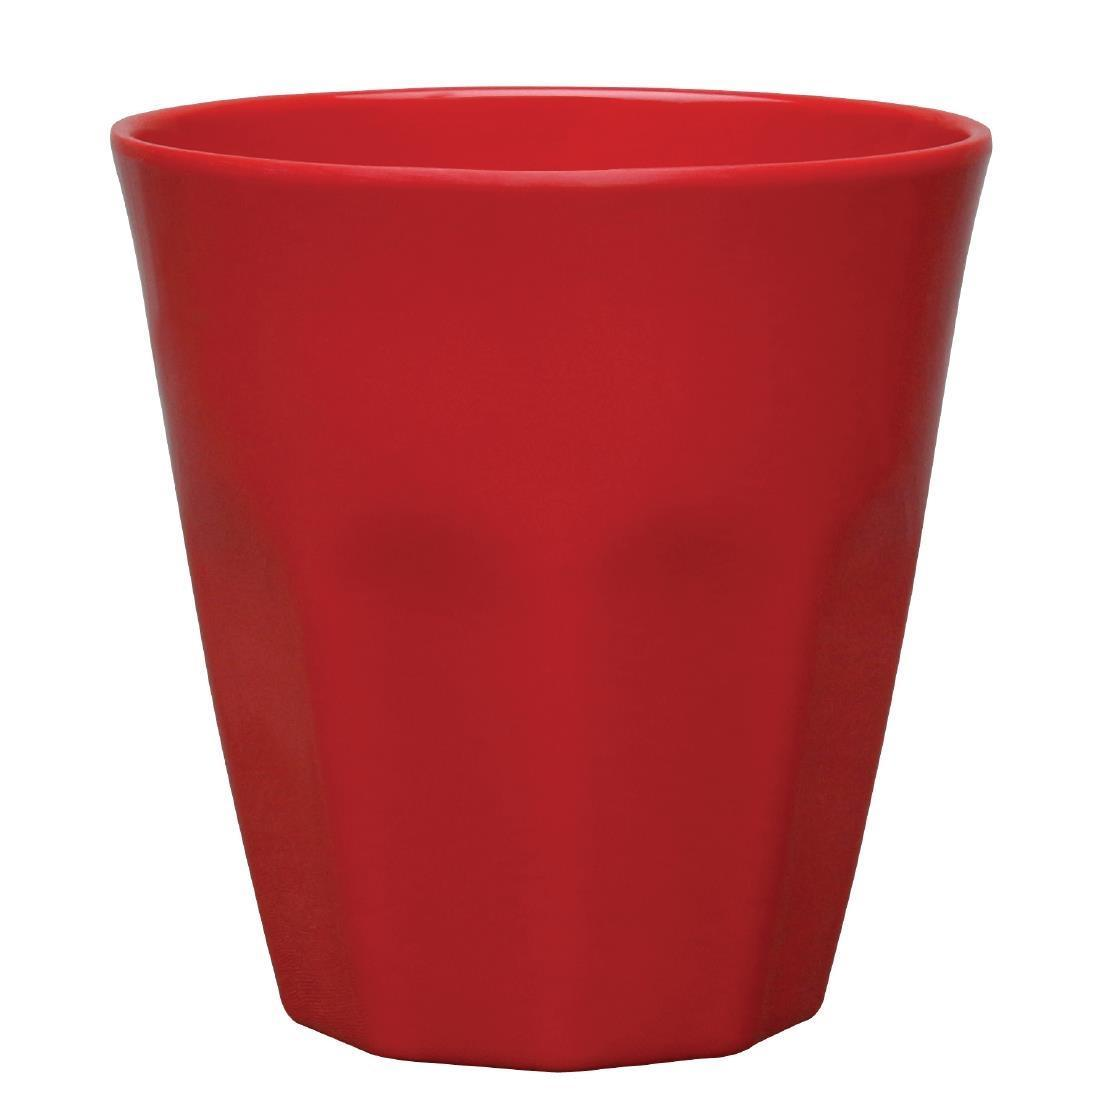 Kristallon Melamine Plastic Tumbler Red 290ml - Case 6 - CR343